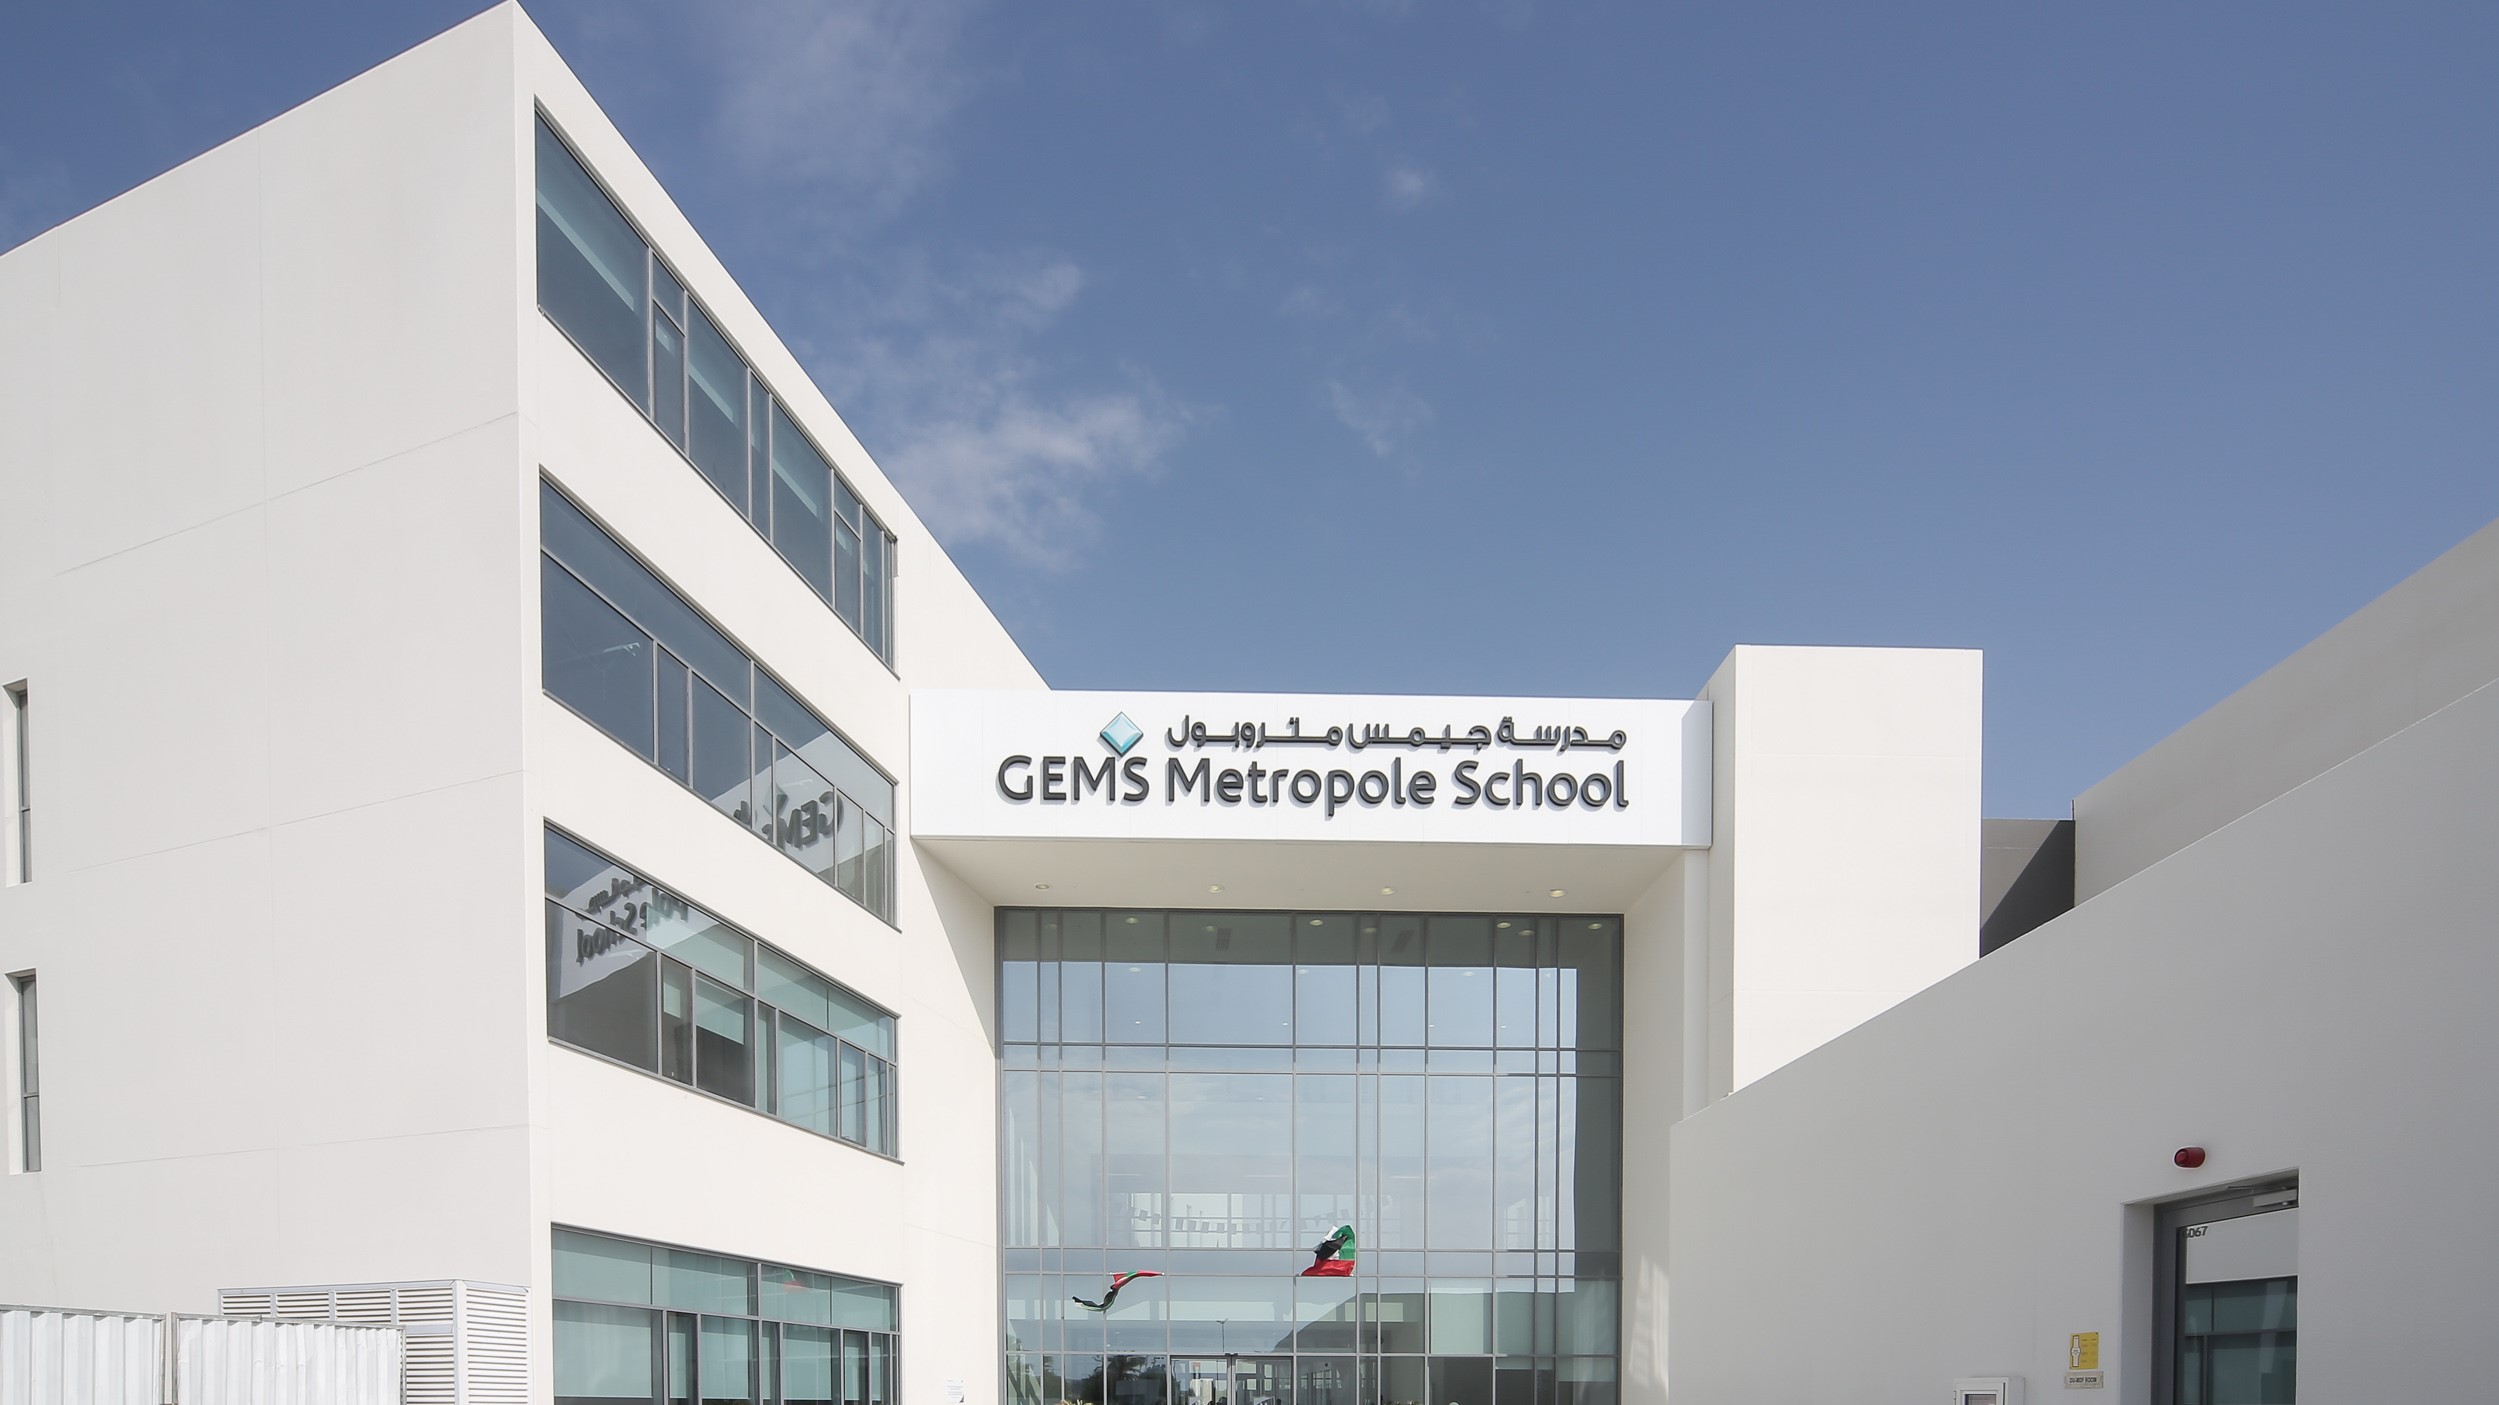 International_Schools_in_Dubai_I_Gems_Metropole_School